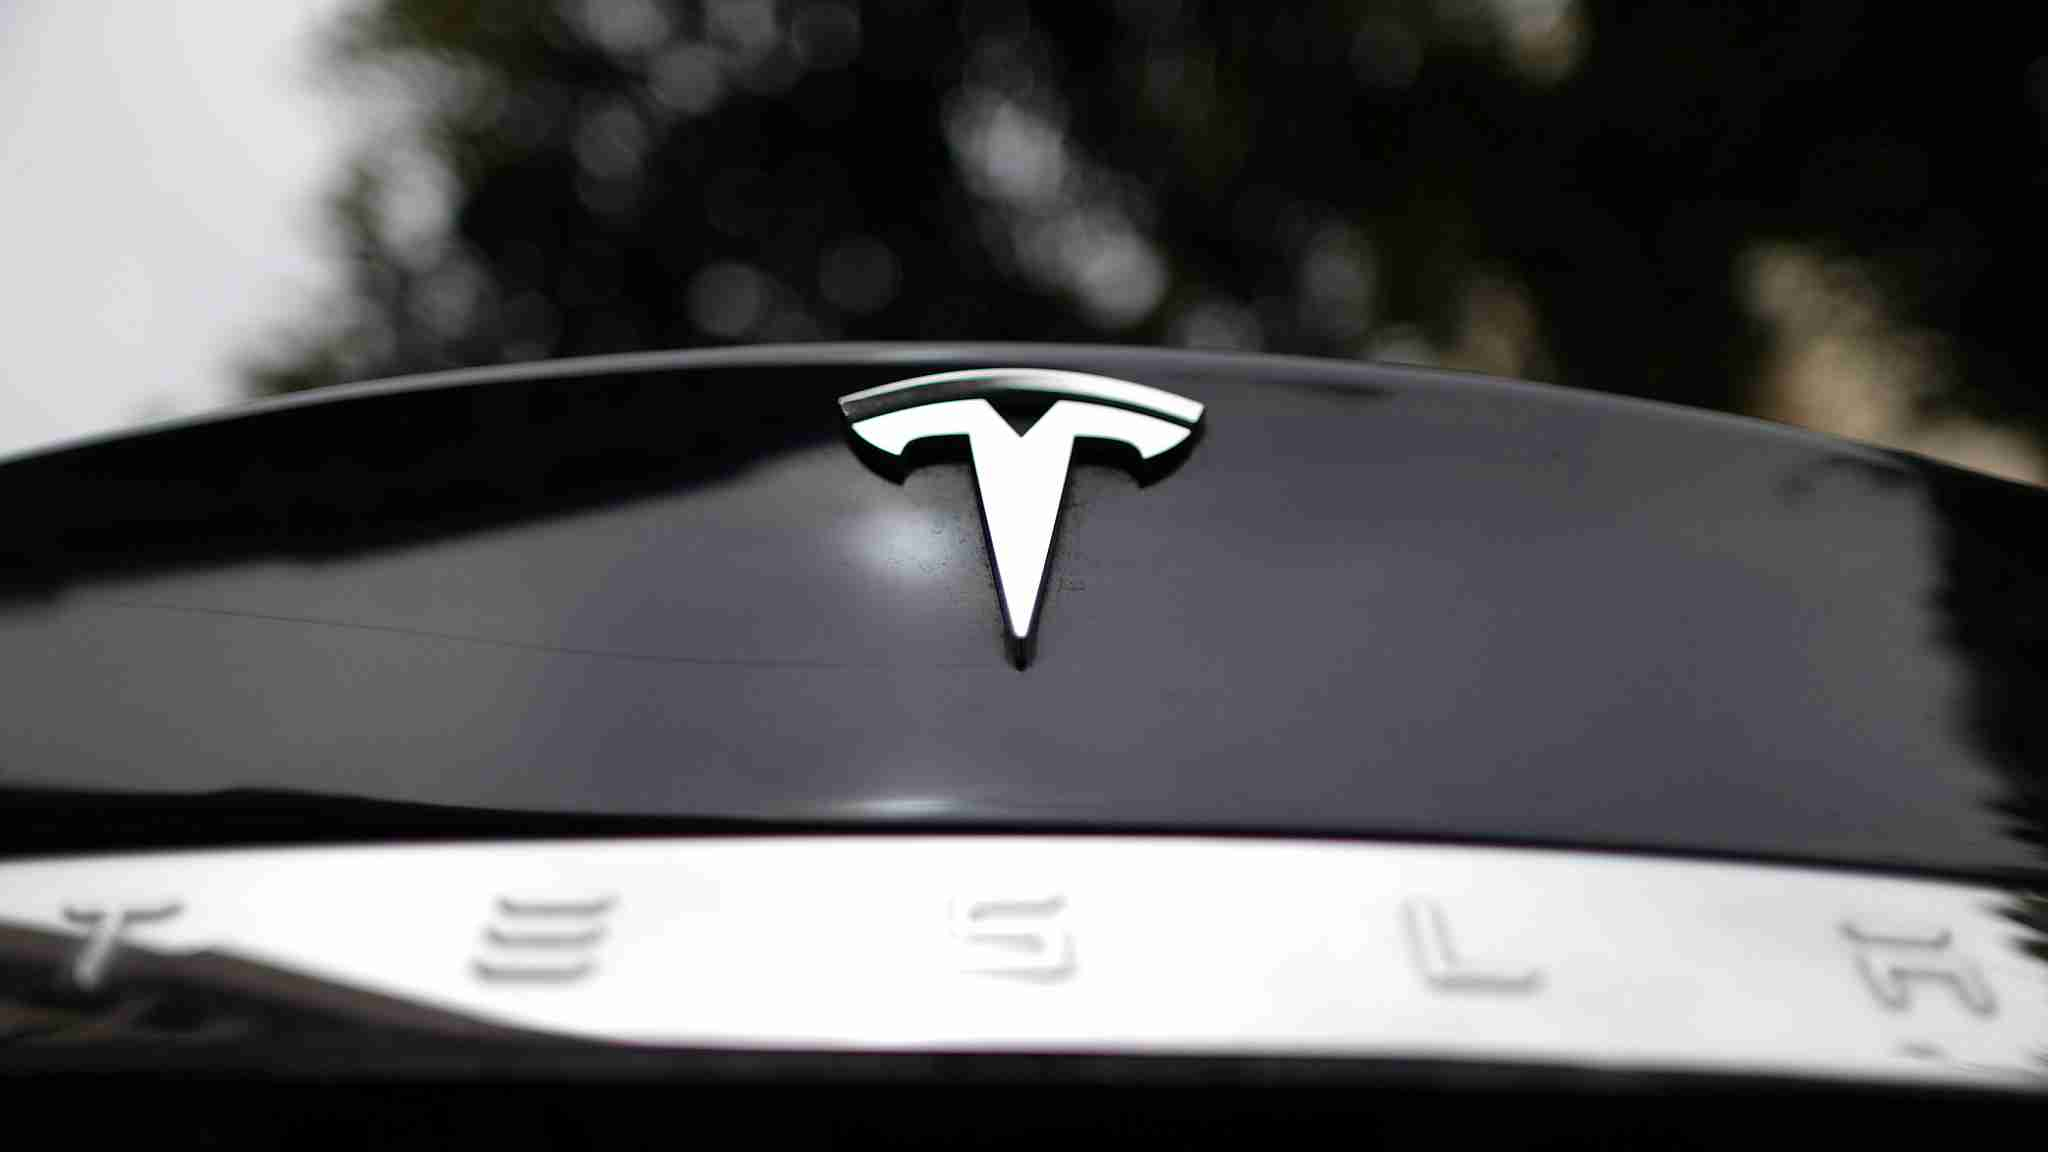 Tesla to start China production in 2019 after 'historic' return to profit